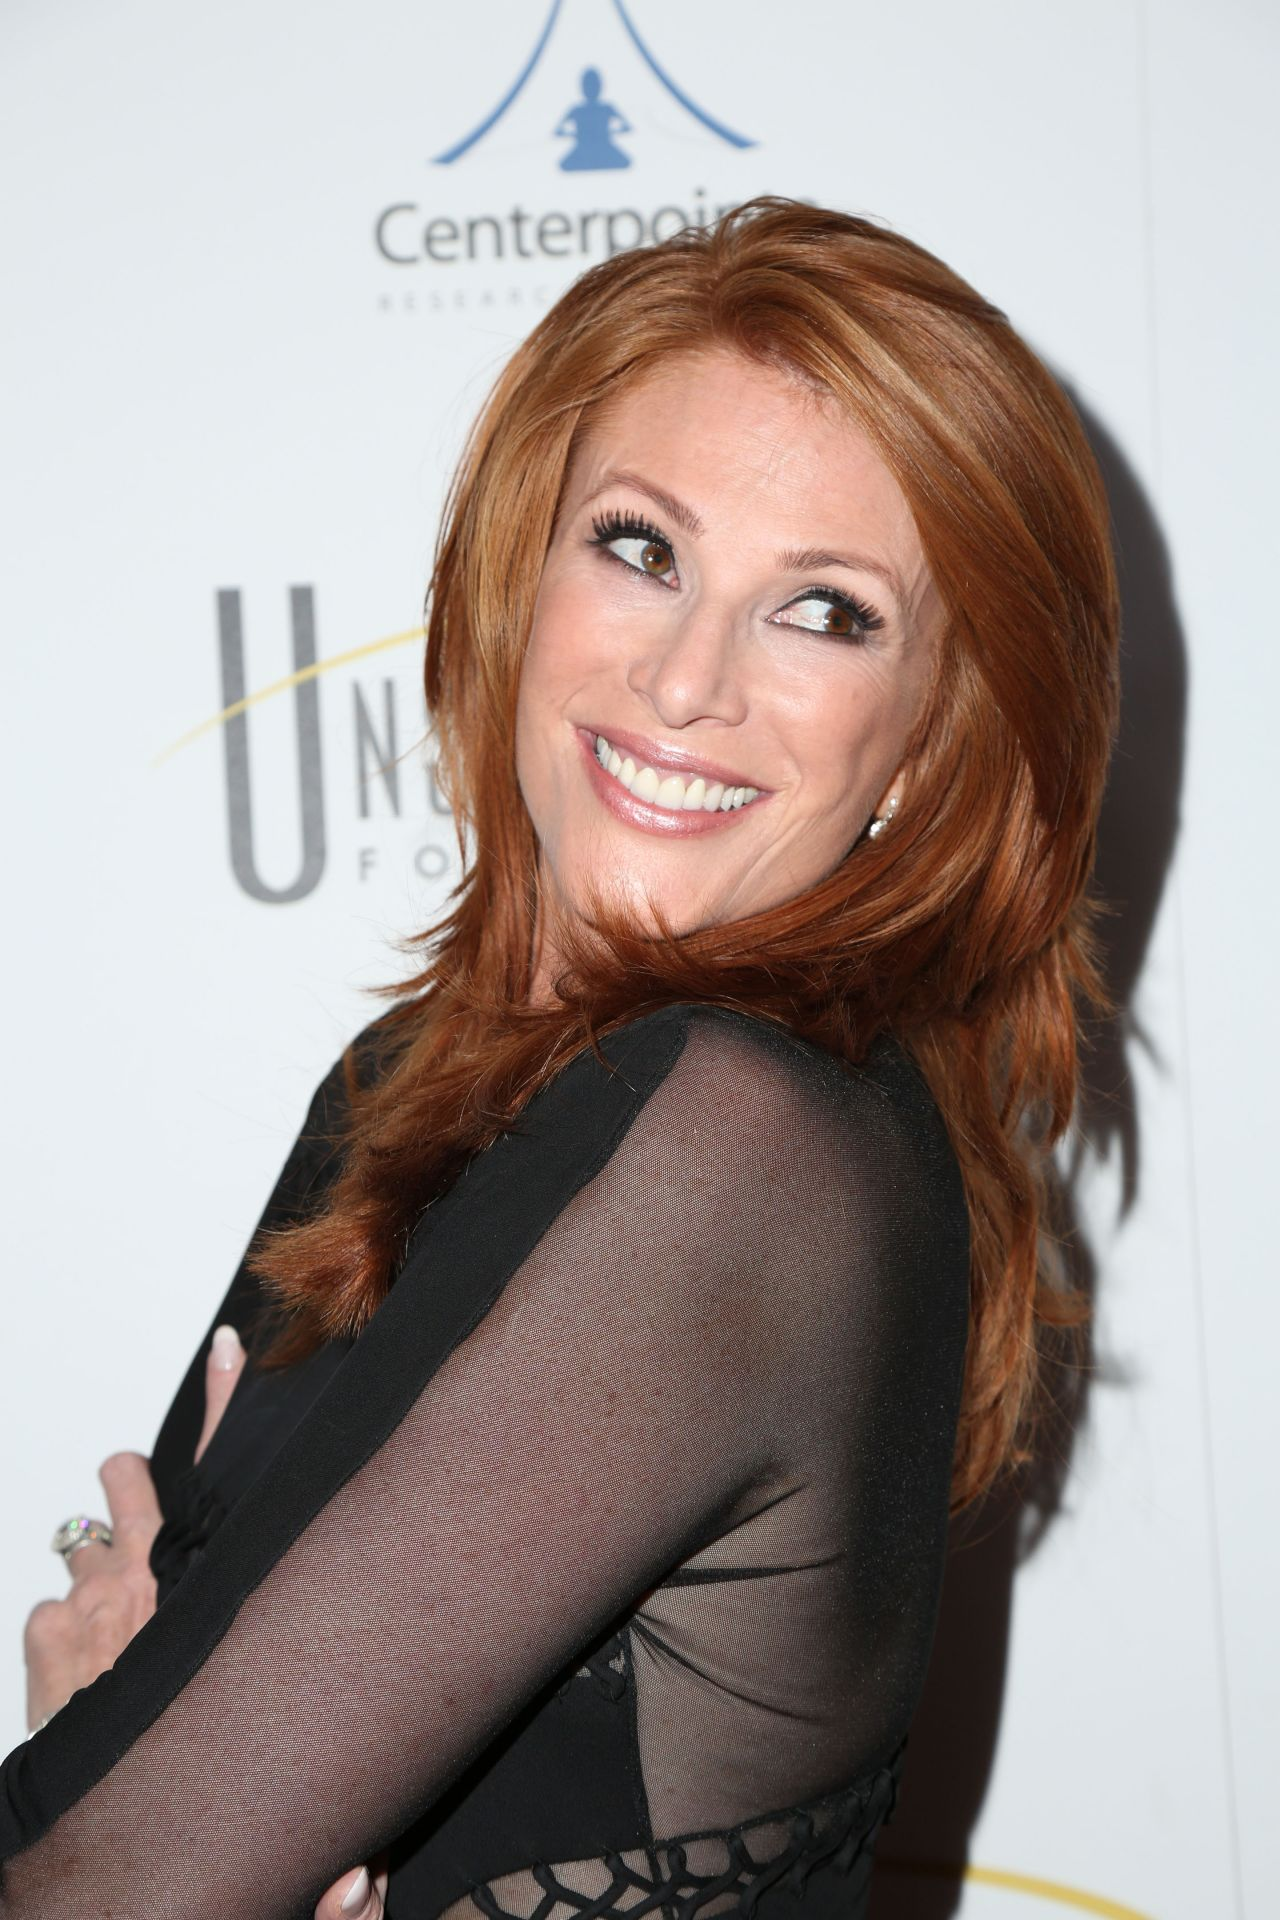 Angie Everhart Unstoppable Foundation Gala In Beverly